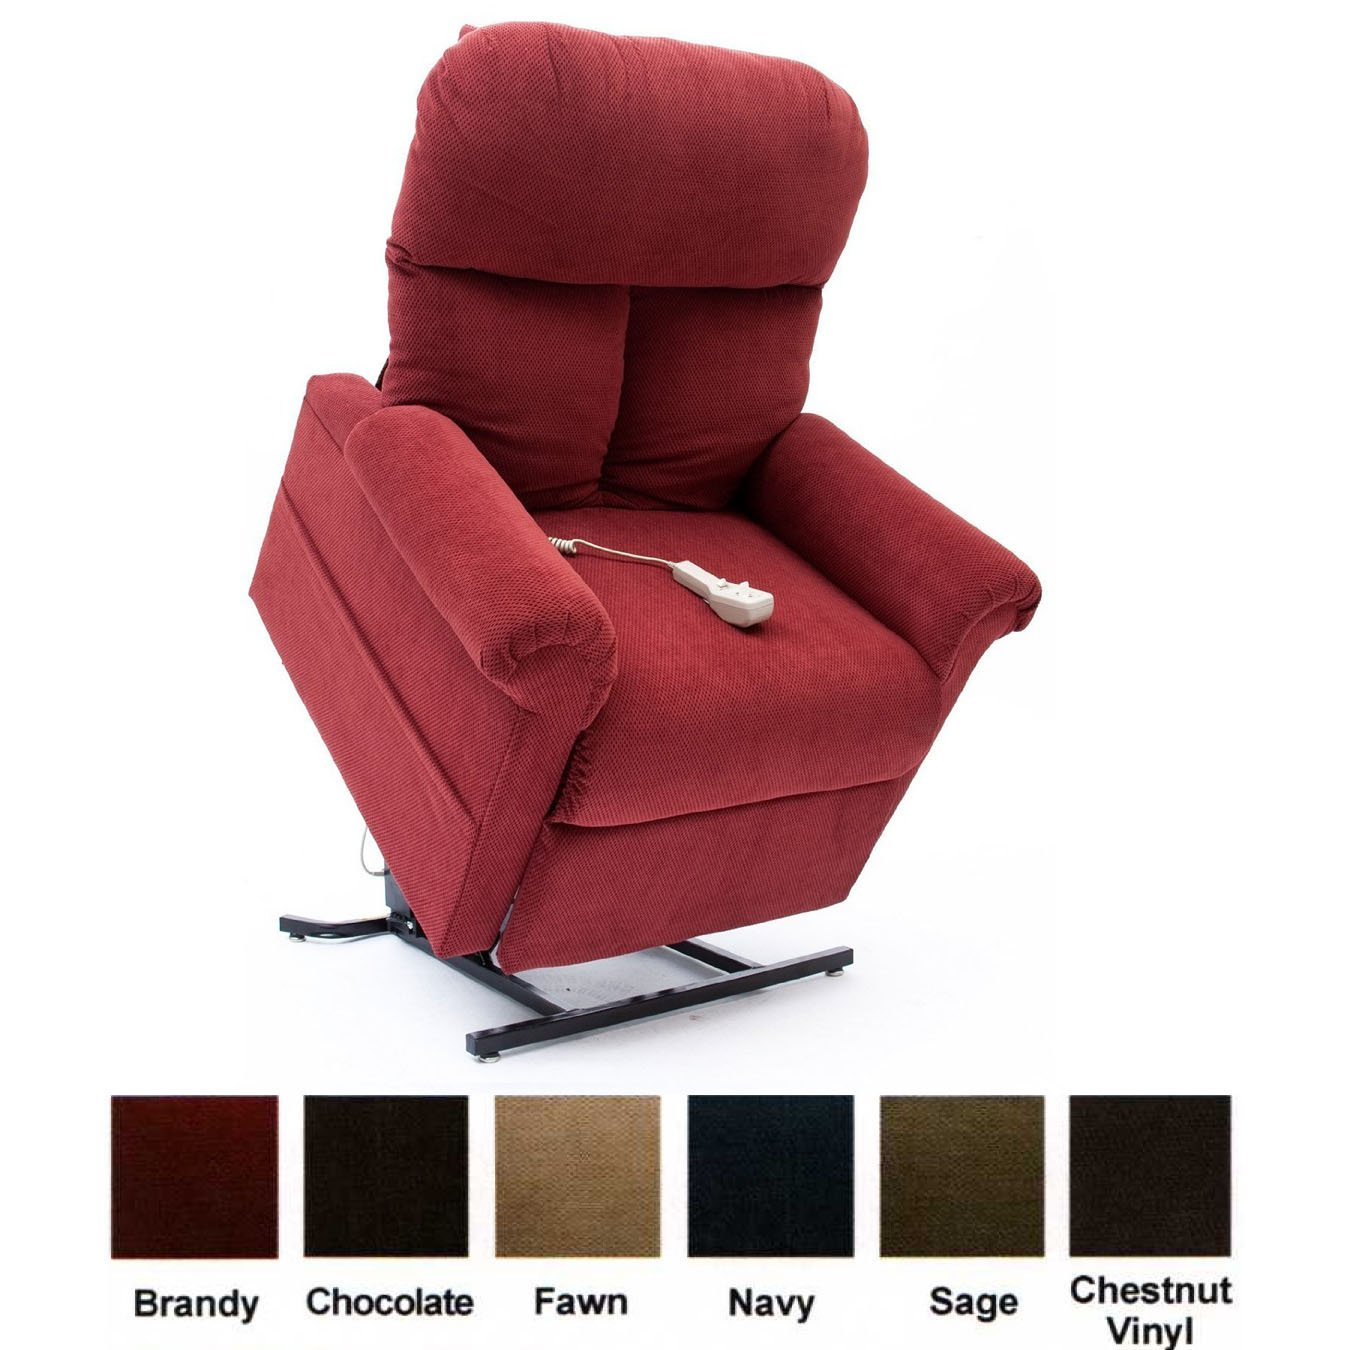 Amazon.com Mega Motion Power Easy Comfort Lift Chair Lifting Recliner LC-100 with Heat and Massage Infinite Position Rising Electric Chaise Lounger ...  sc 1 st  Amazon.com & Amazon.com: Mega Motion Power Easy Comfort Lift Chair Lifting ... islam-shia.org